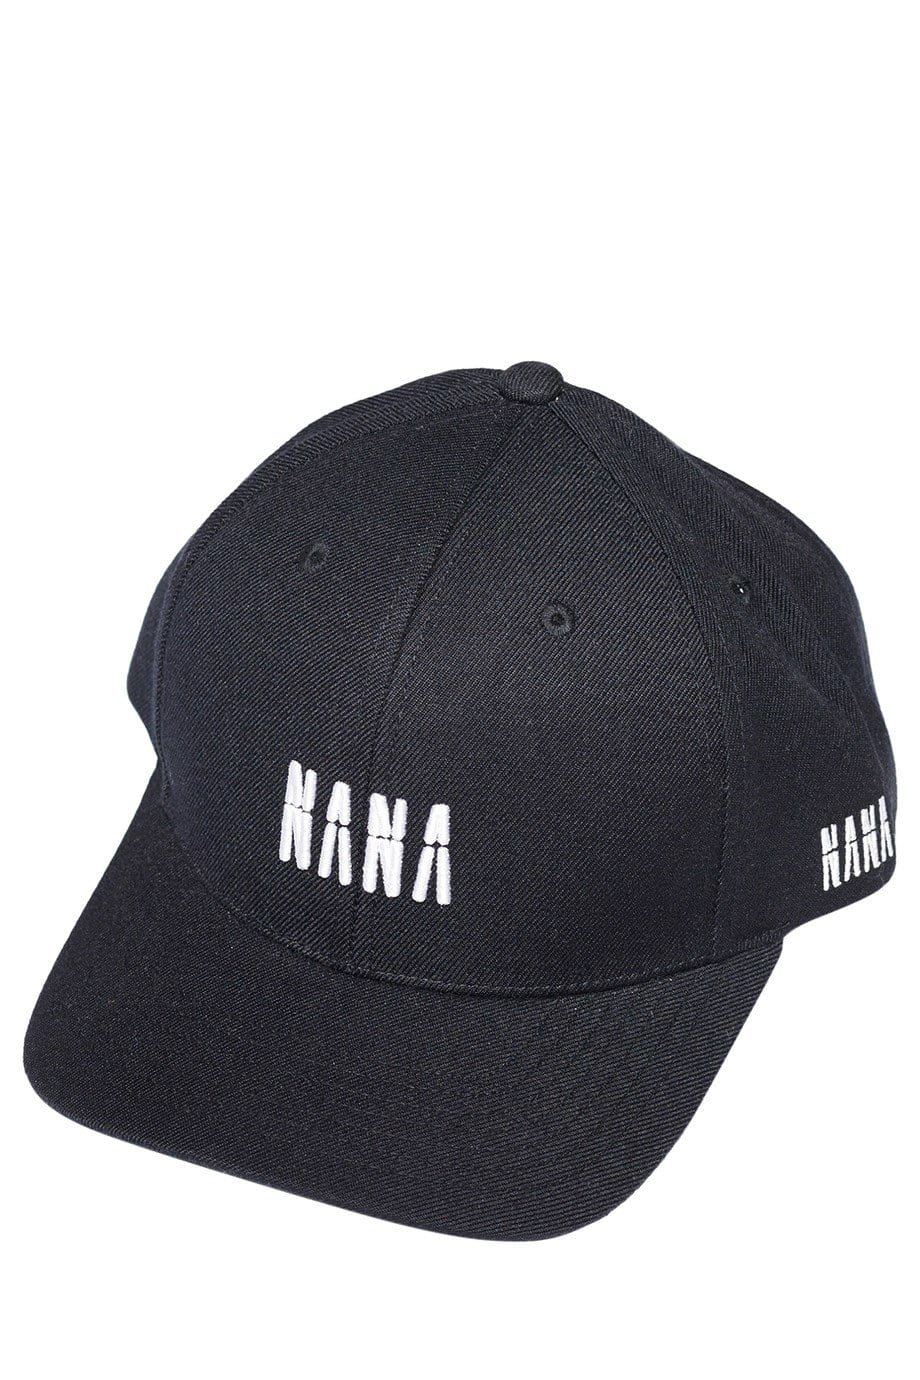 Nana Polo Cap Faded Black